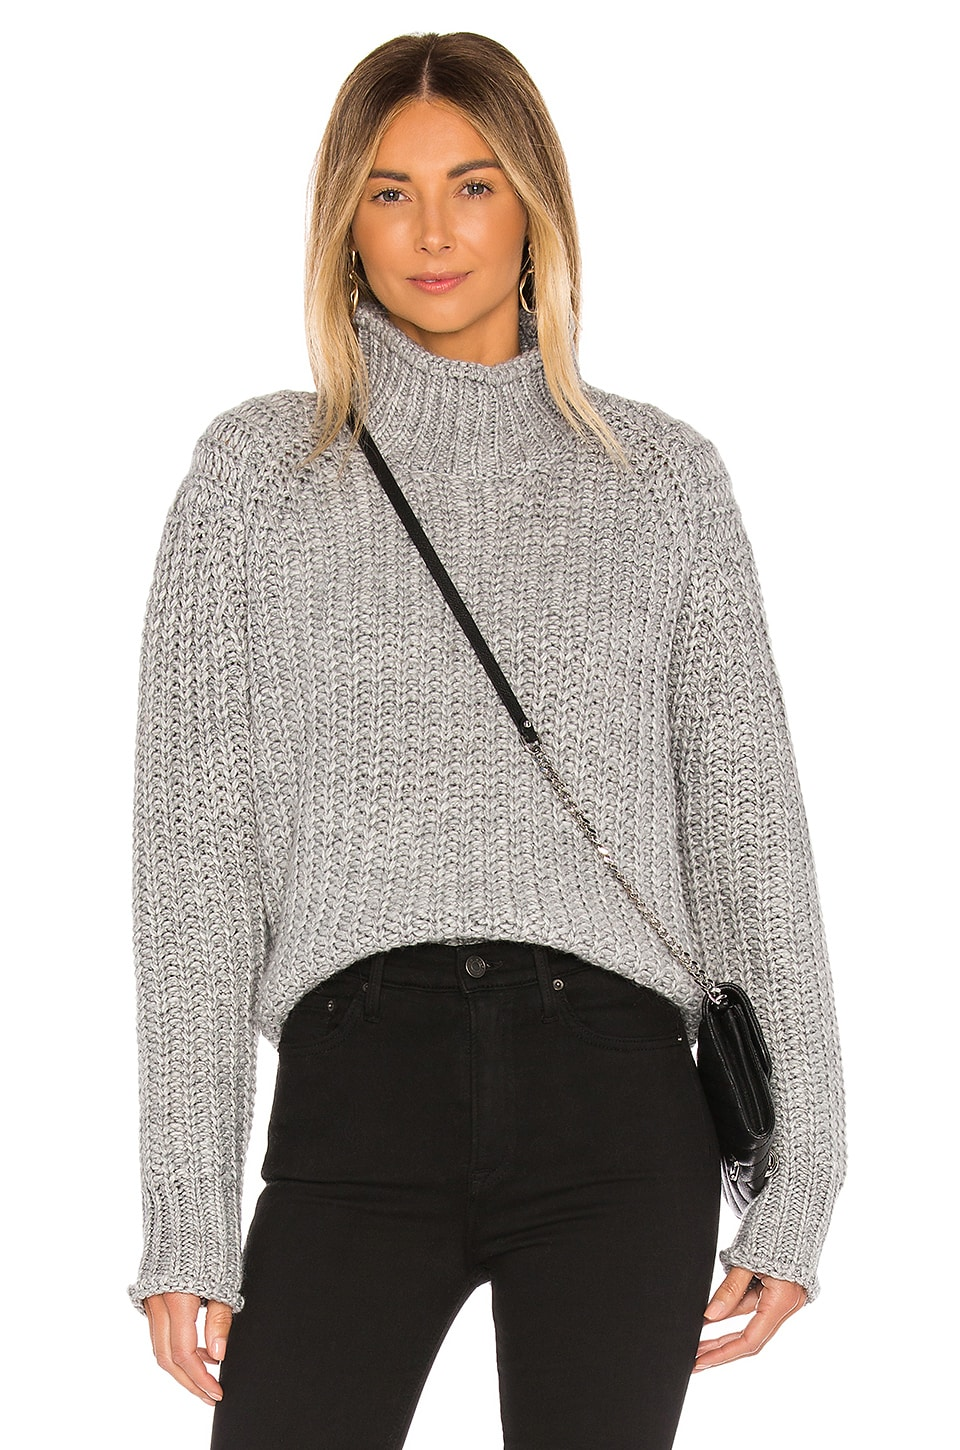 MINKPINK Stevie High Neck Knit Sweater in Grey Marle